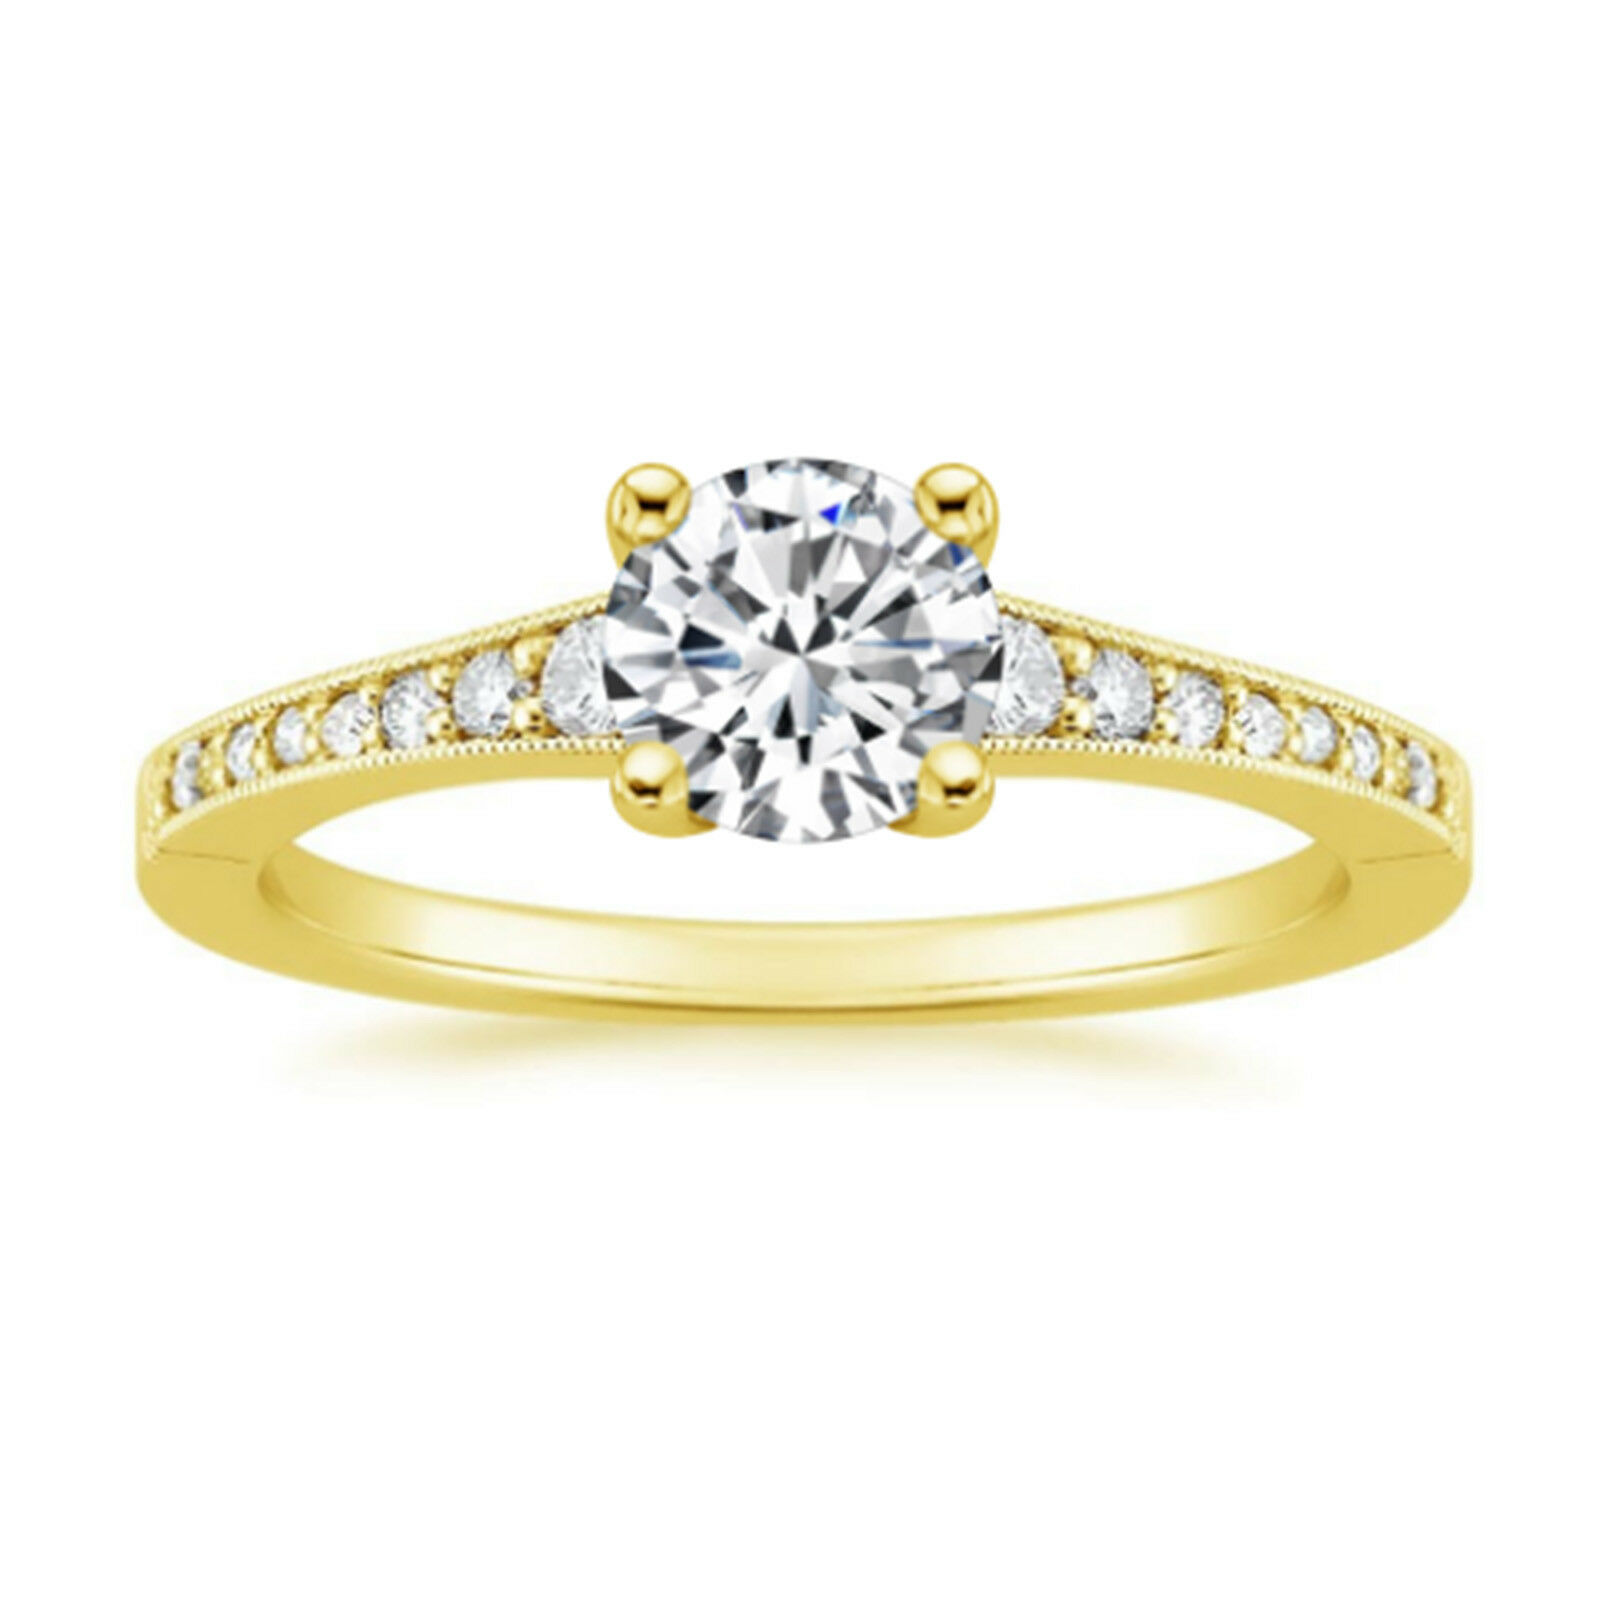 0.73 Ct Round Cut VVS1D Diamond Engagement 14K Yellow gold Rings Size 5.5 6 7 8